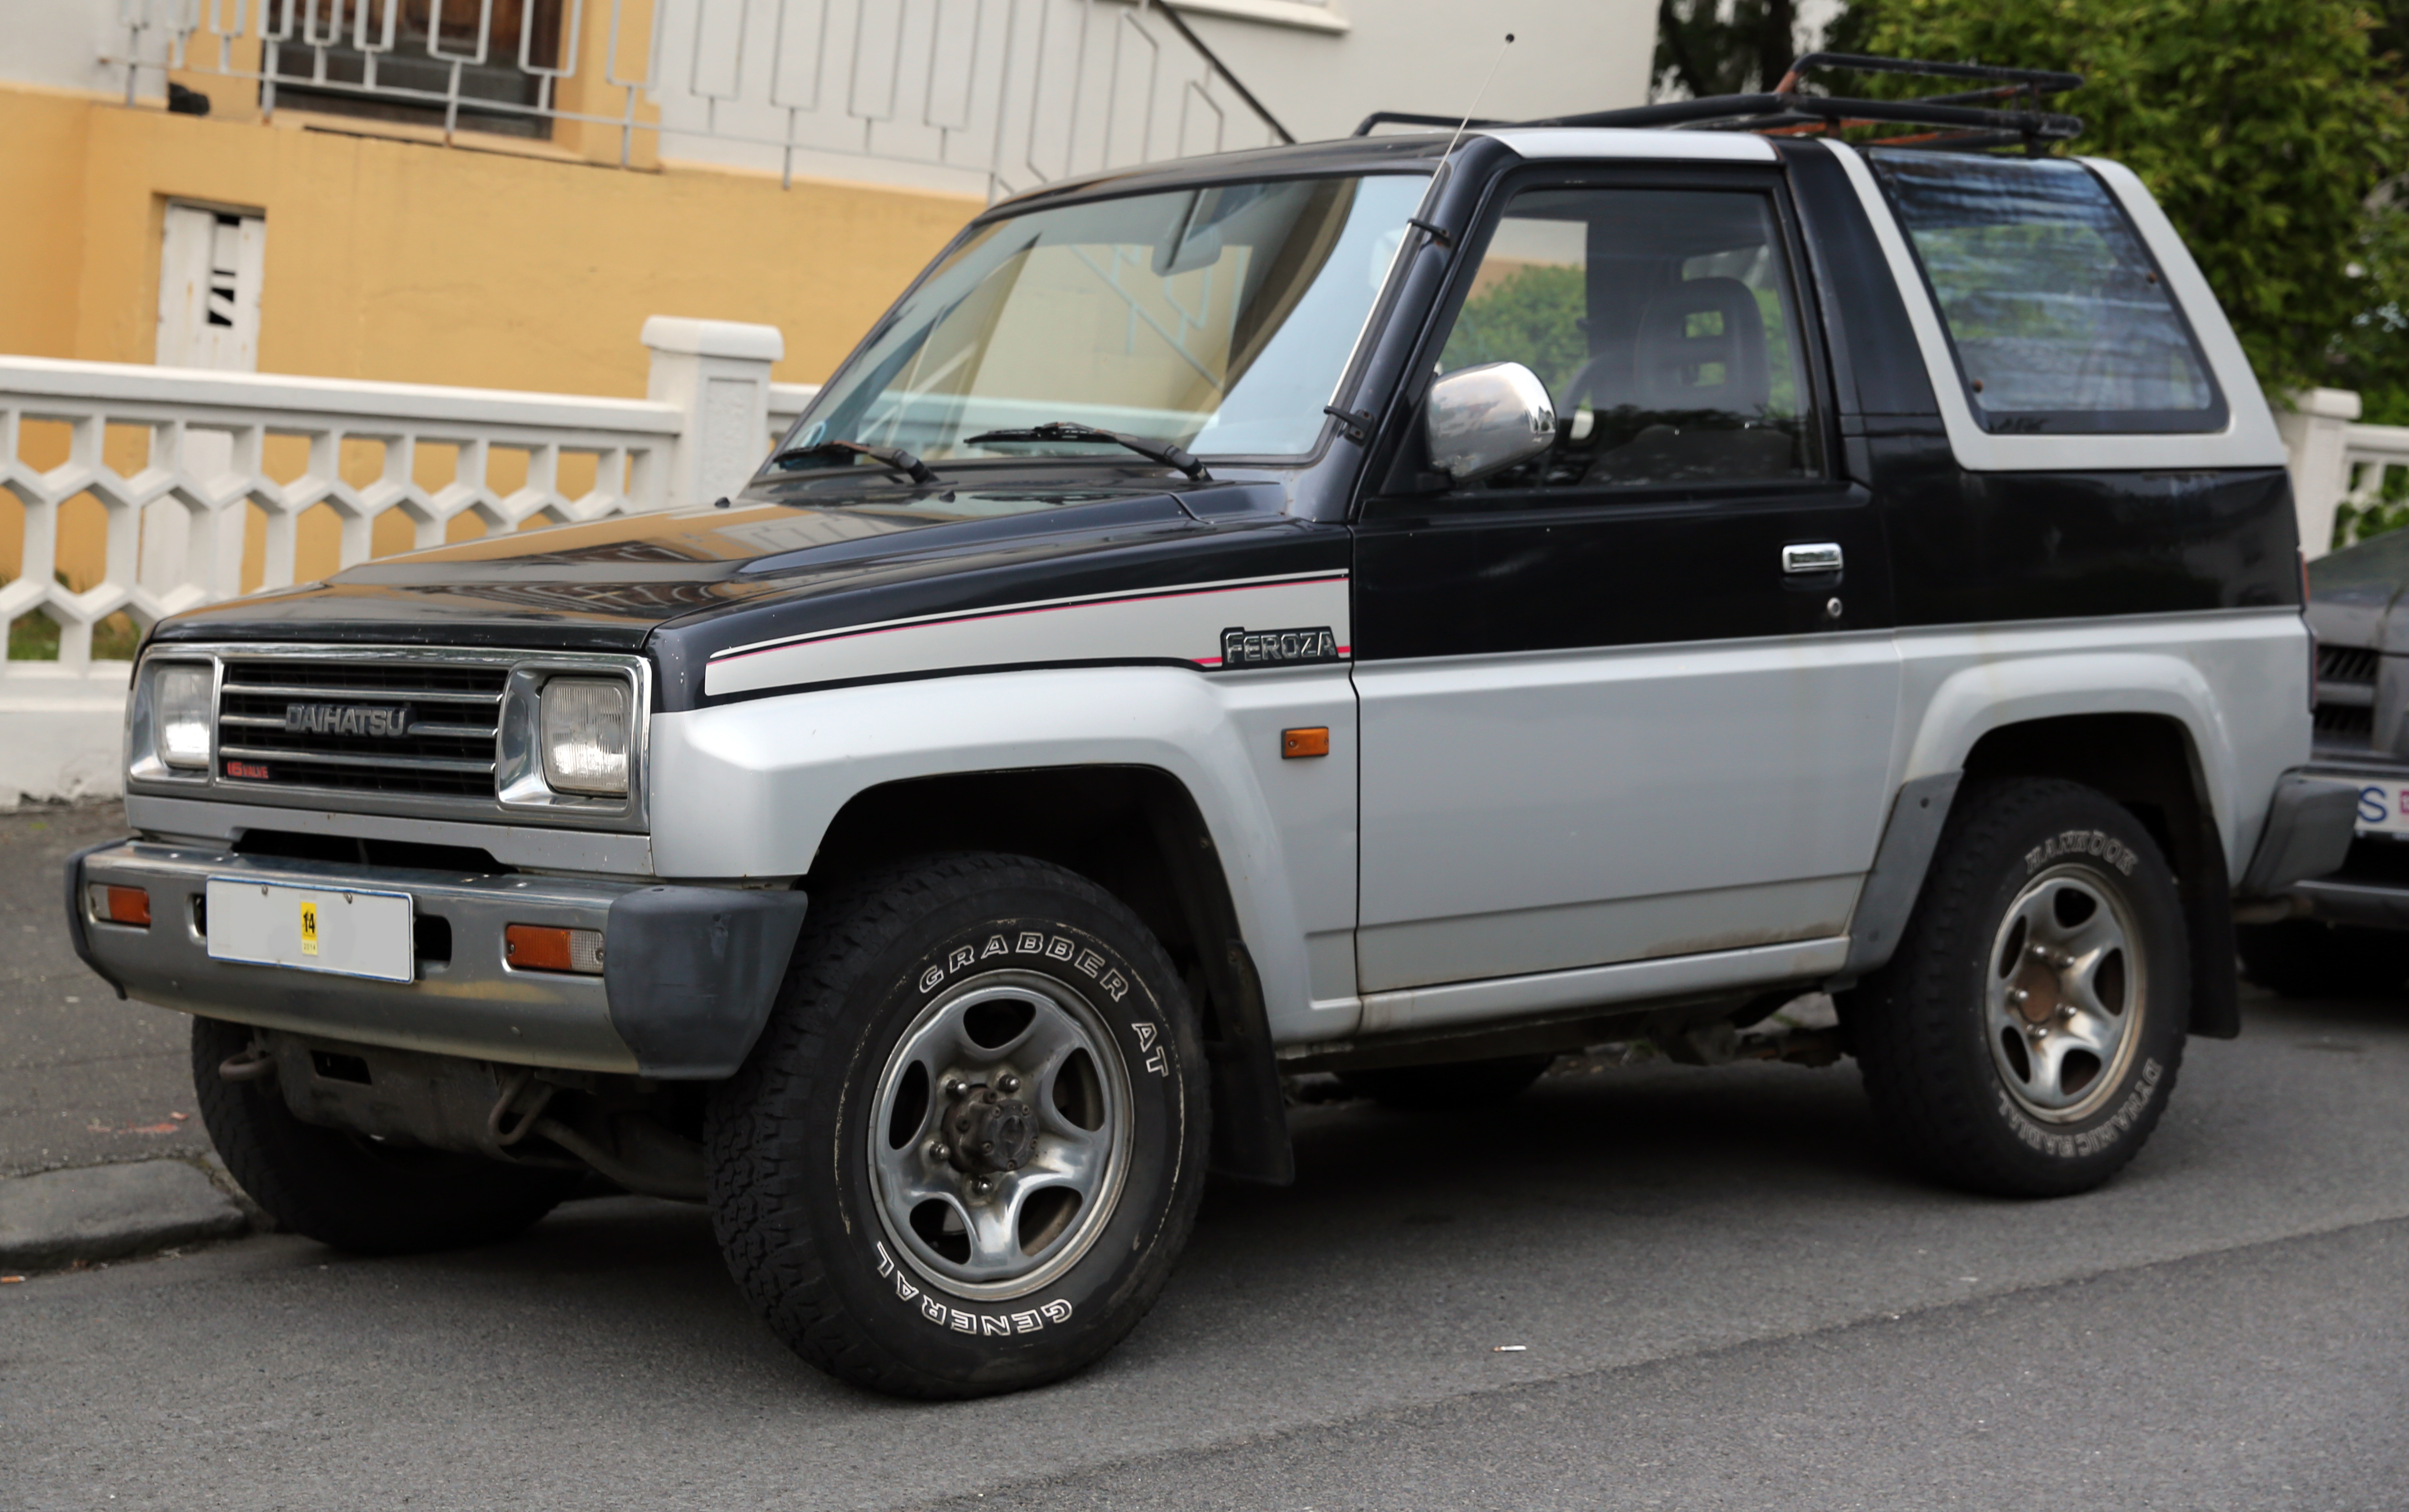 1990 Daihatsu Rocky soft top f7 f8 – pictures information and